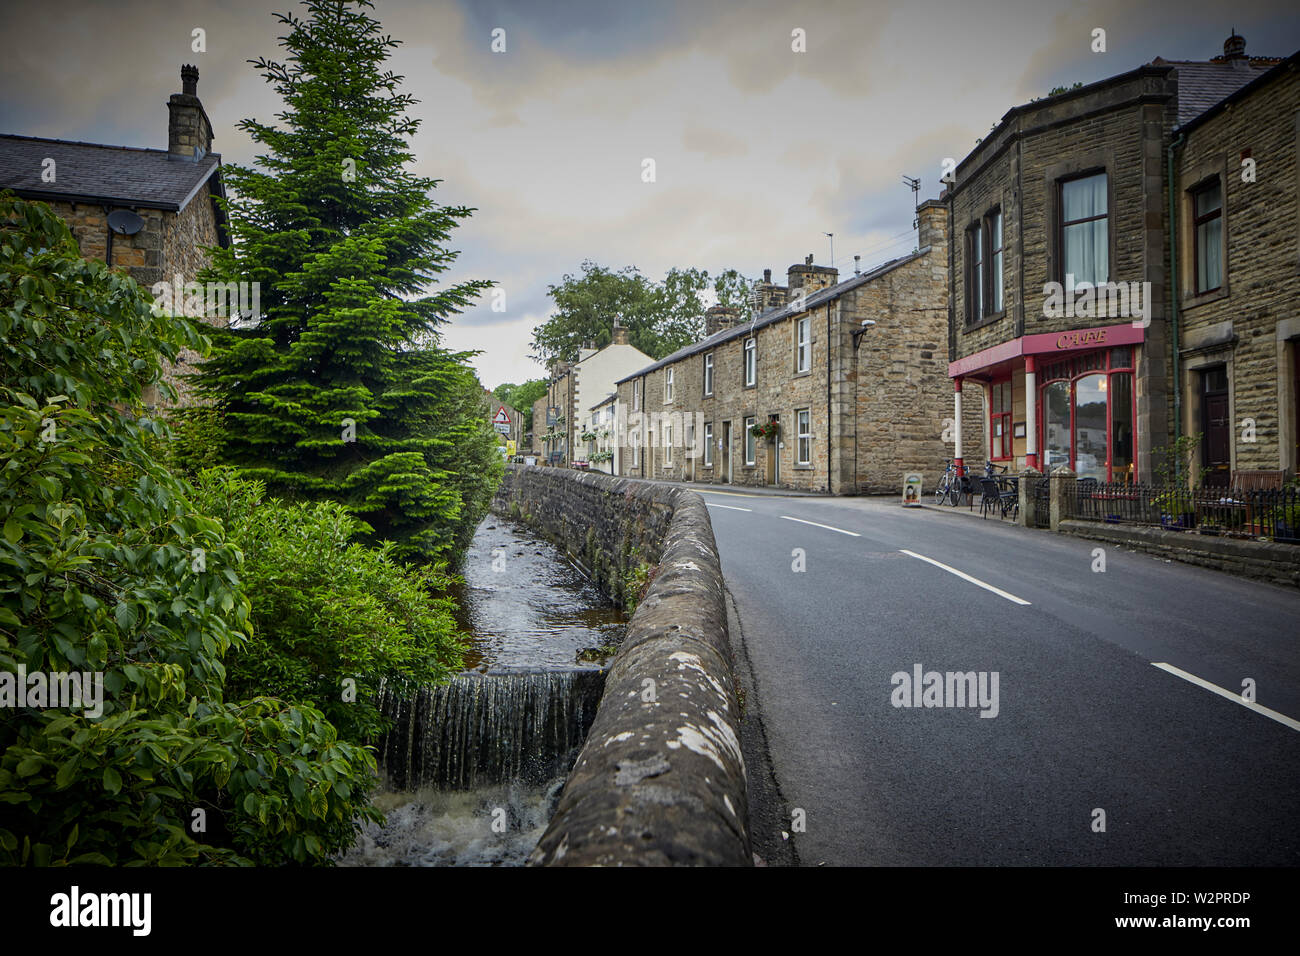 Waddington small picturesque village near Clitheroe in the Ribble Valley, Lancashire, Country Kitchen (red) Assembly Rooms, Clitheroe Rd, - Stock Image